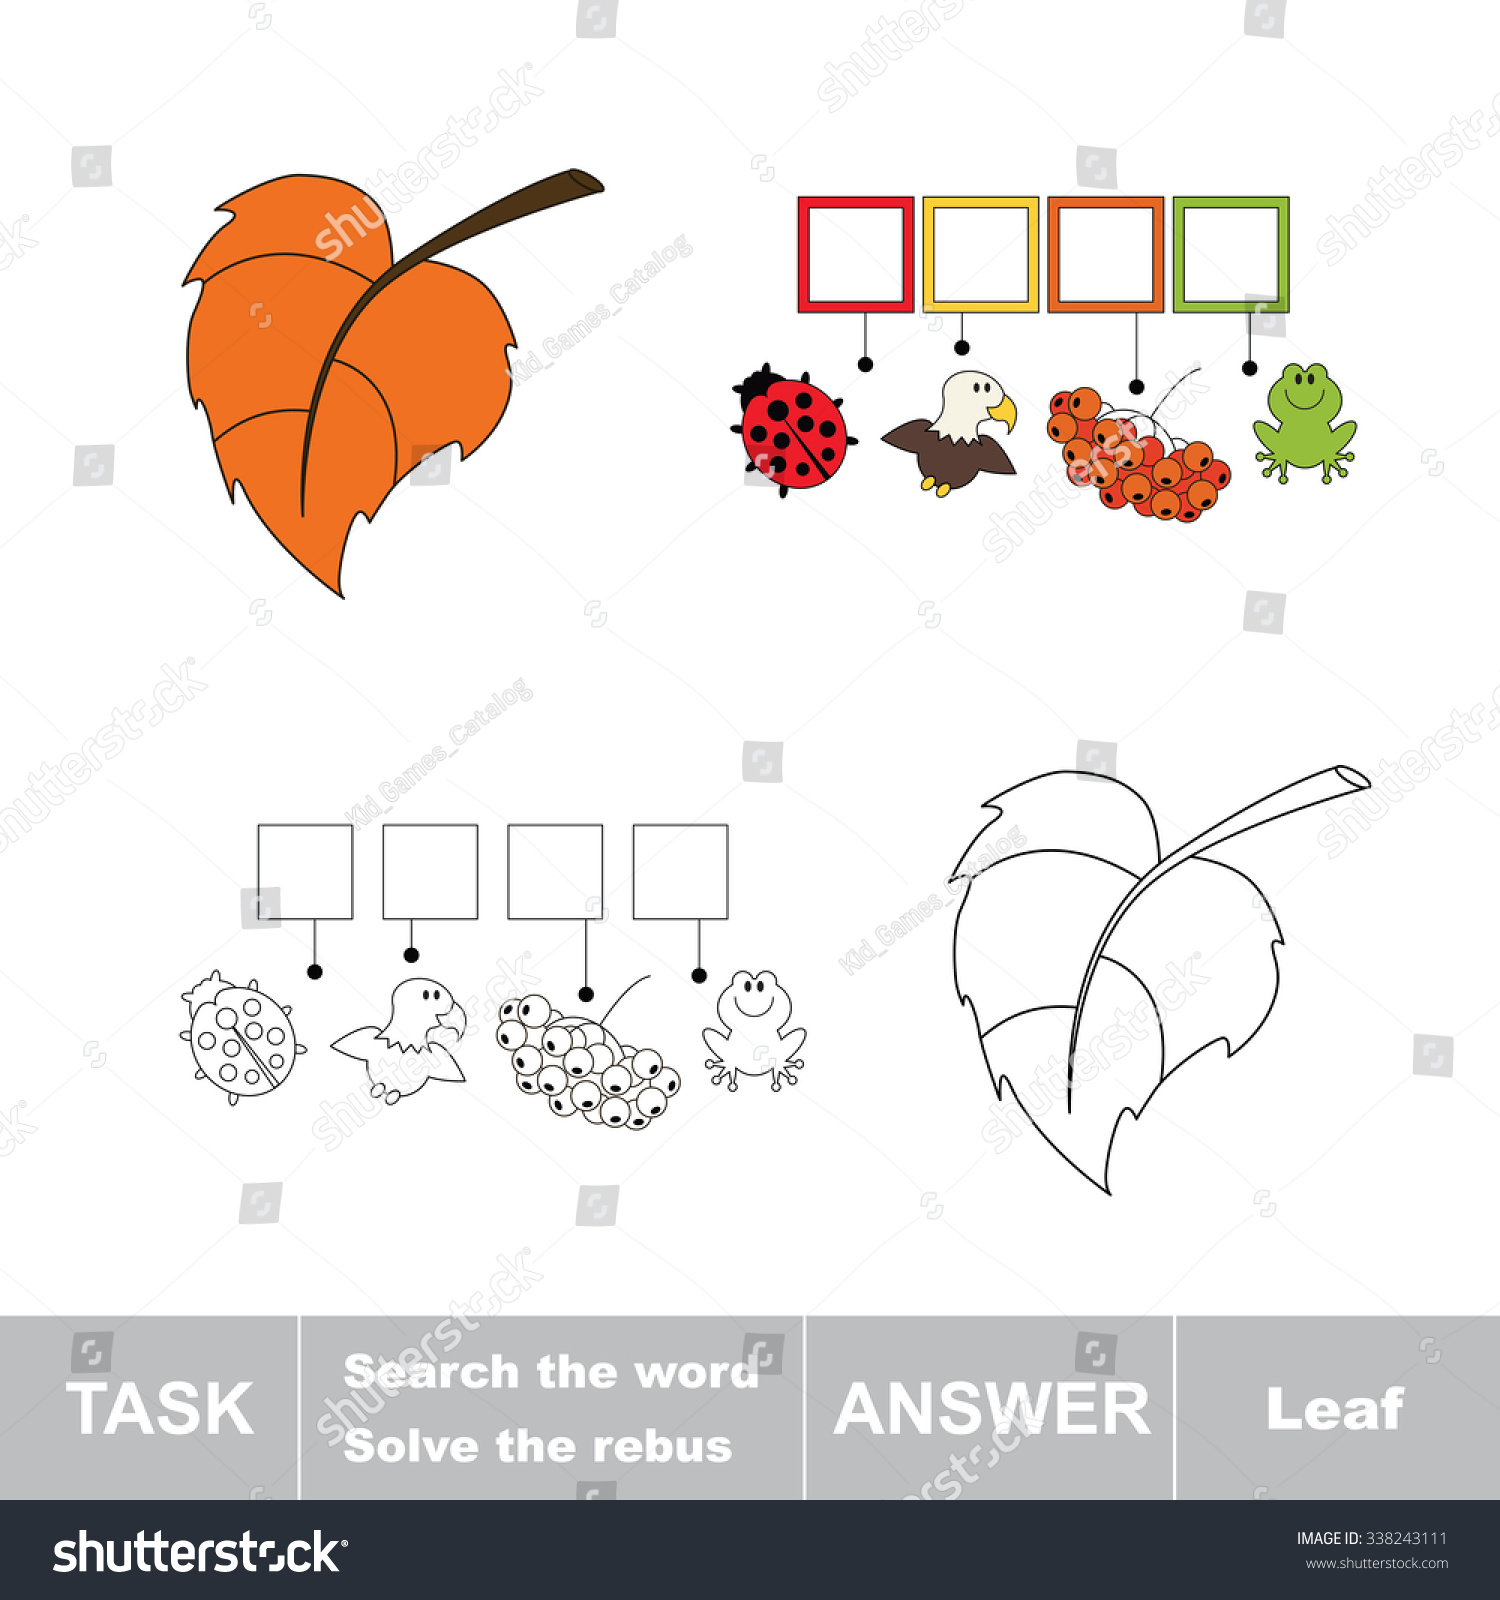 vector rebus game solve the rebus and find the word leaf task and answer 338243111. Black Bedroom Furniture Sets. Home Design Ideas